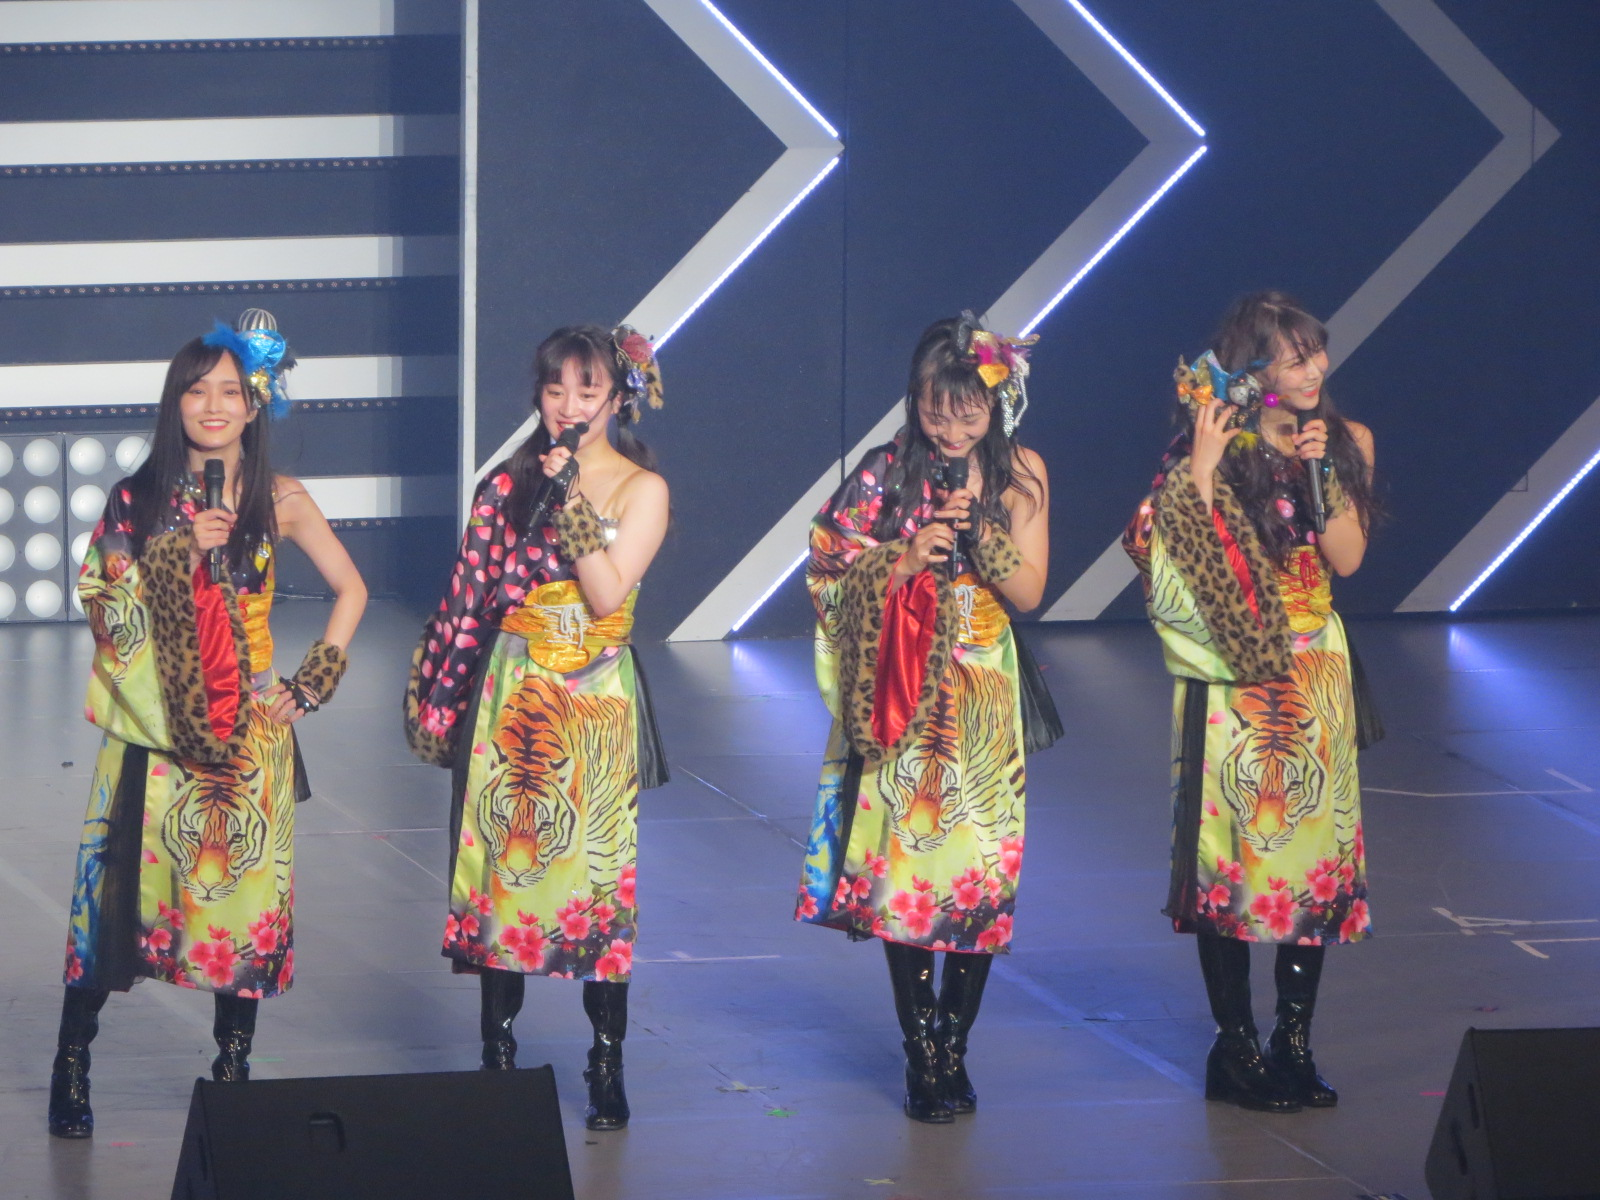 NMB48 LIVE TOUR 2018 in Summer・石川公演の画像-036